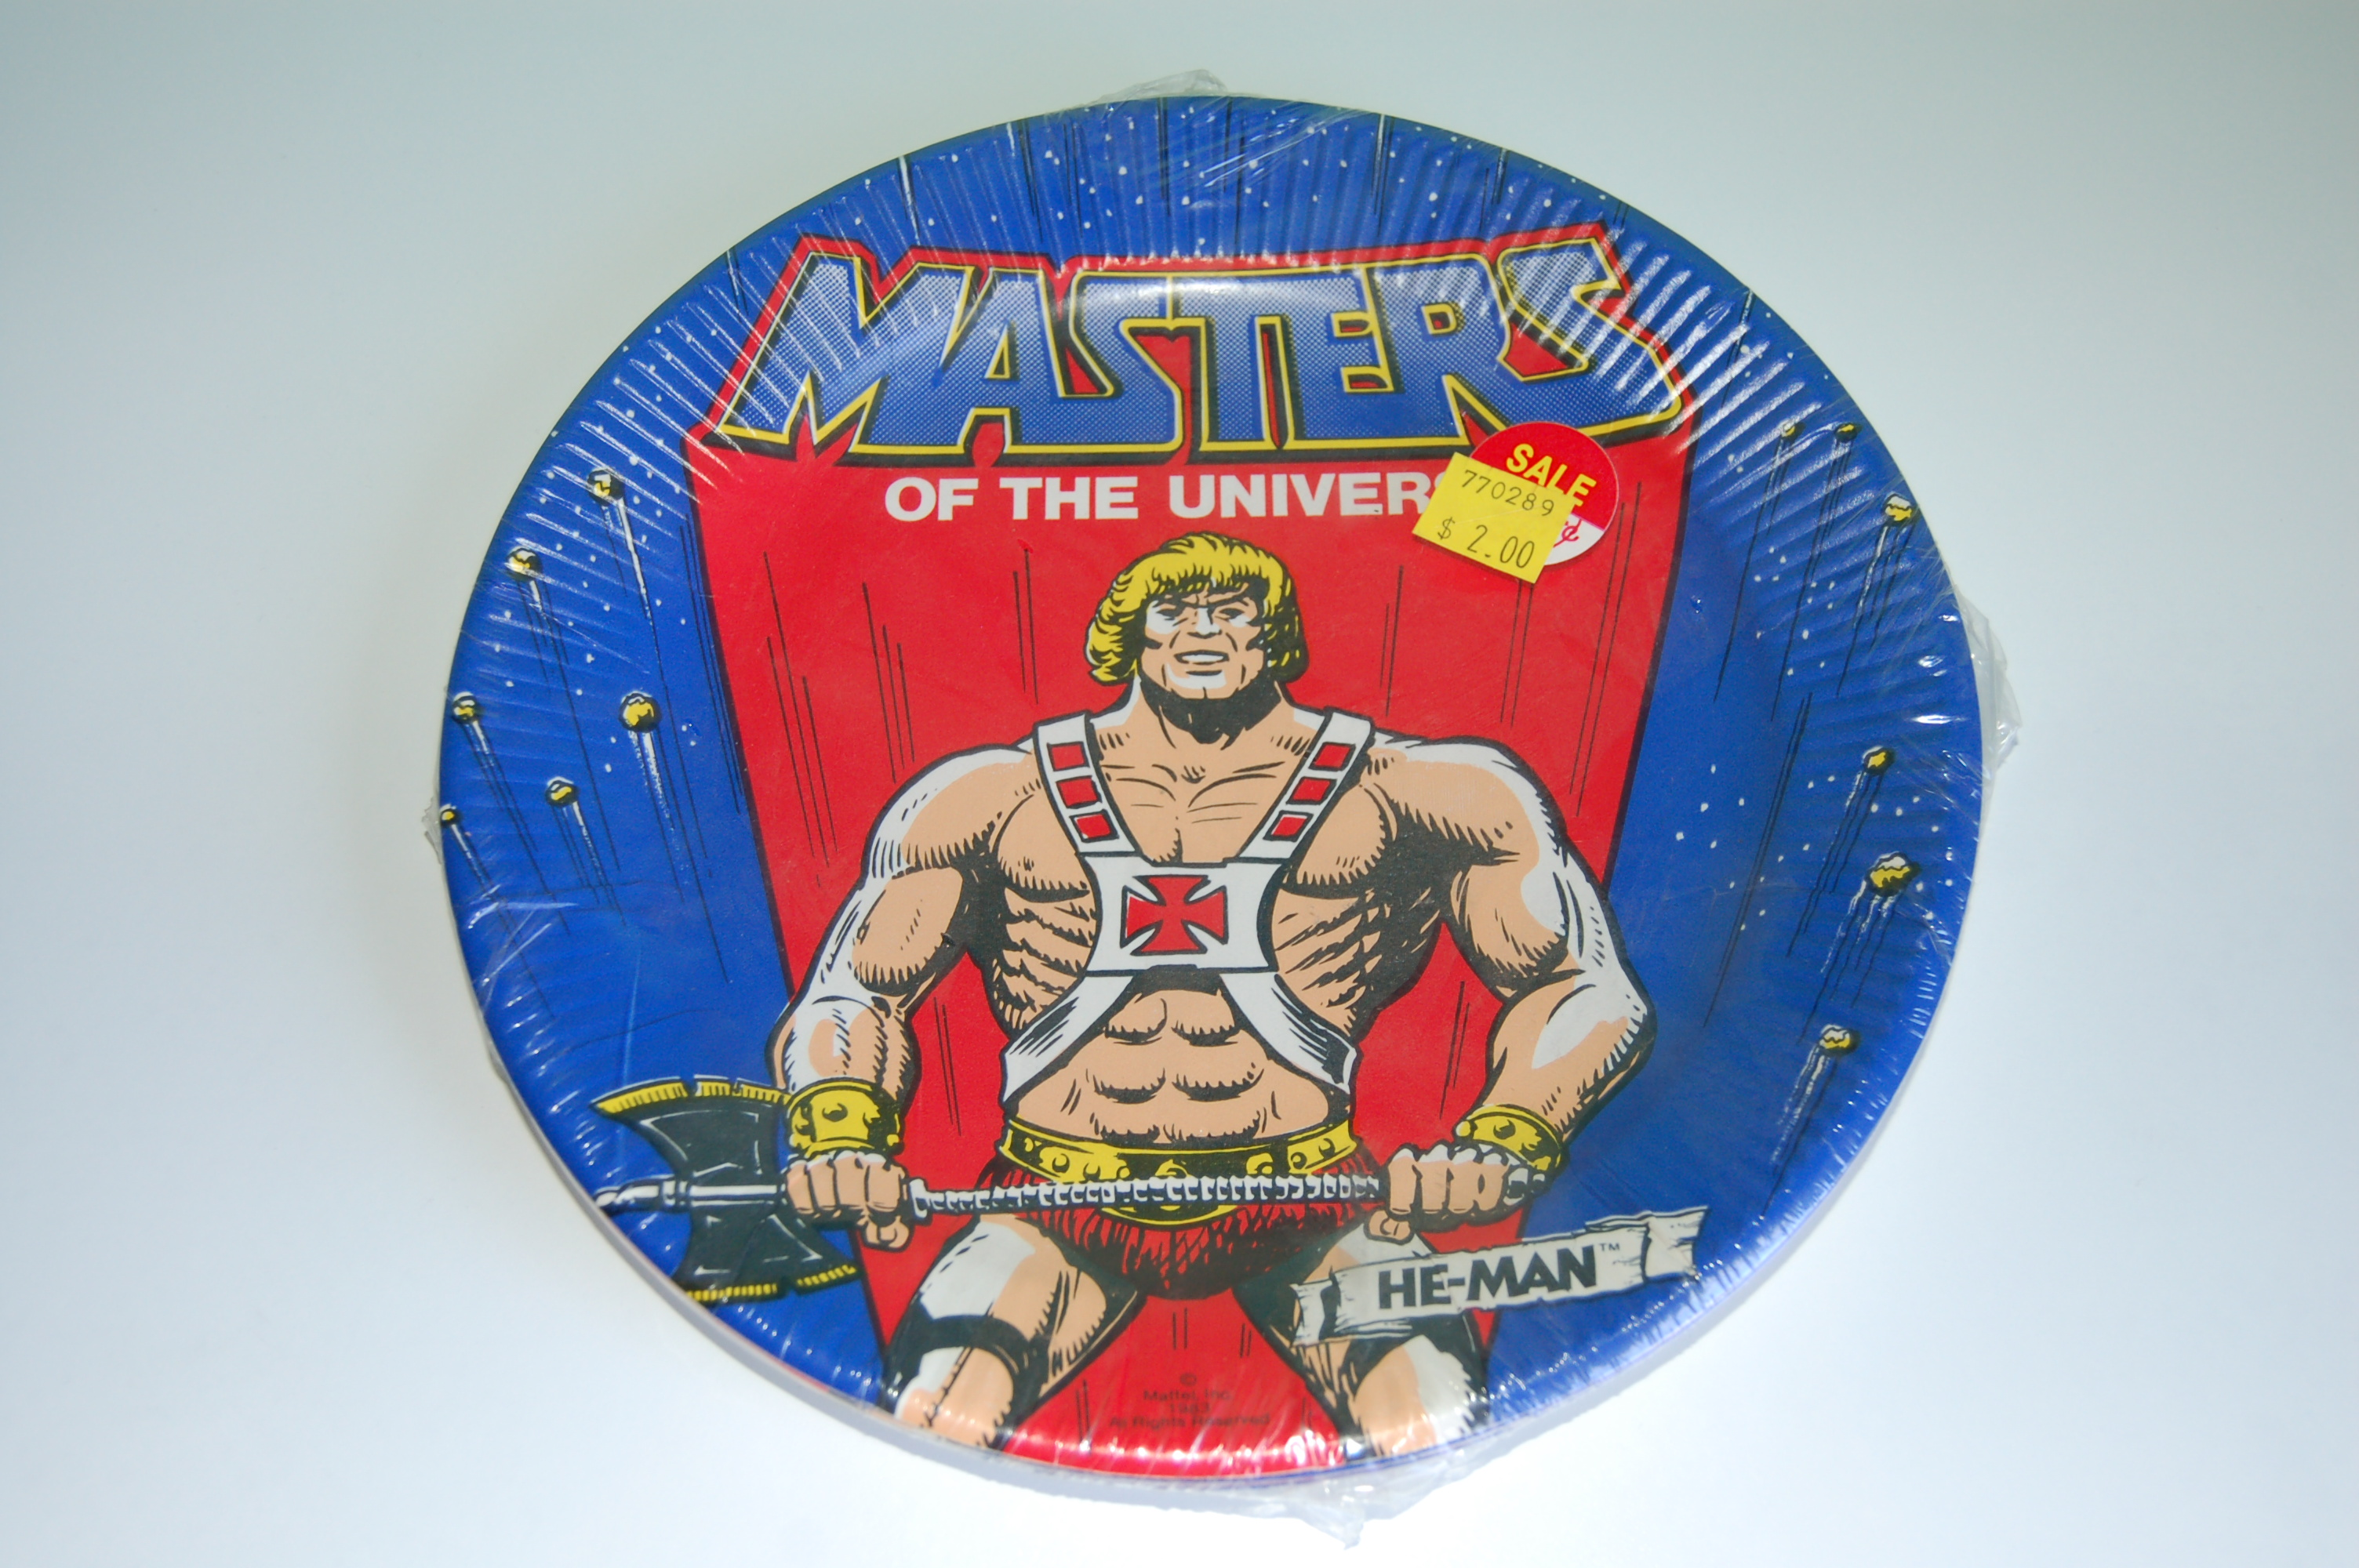 He Man Org Gt Merchandising Gt Party Favors And Invitations